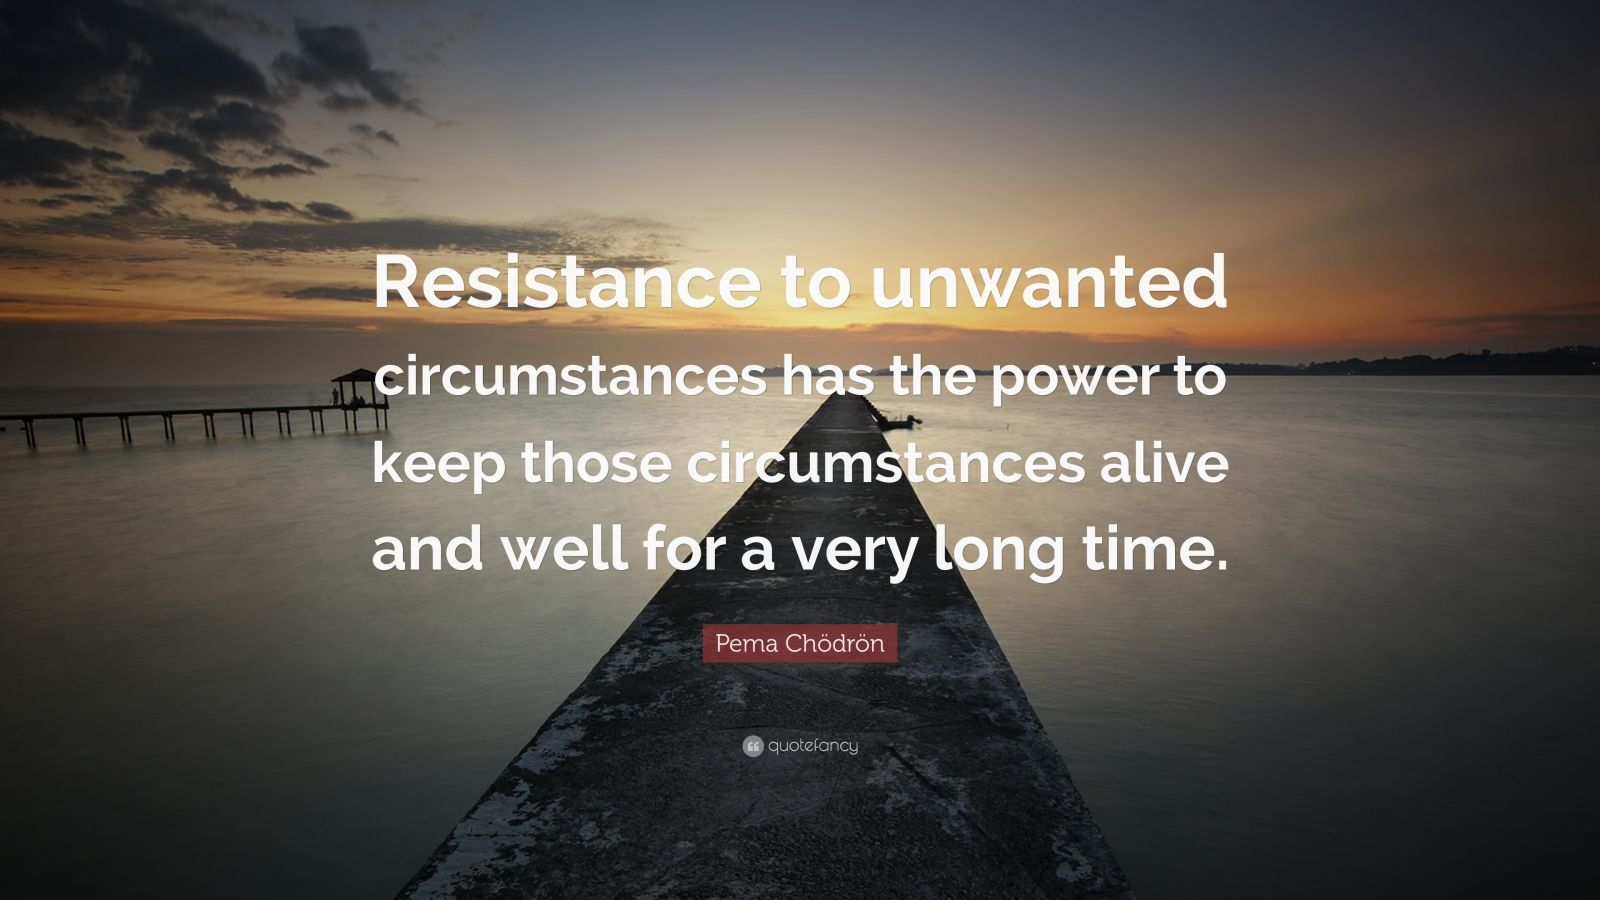 """Pema Chödrön Quote: """"Resistance to unwanted circumstances has the power to keep those circumstances alive and well for a very long time."""""""